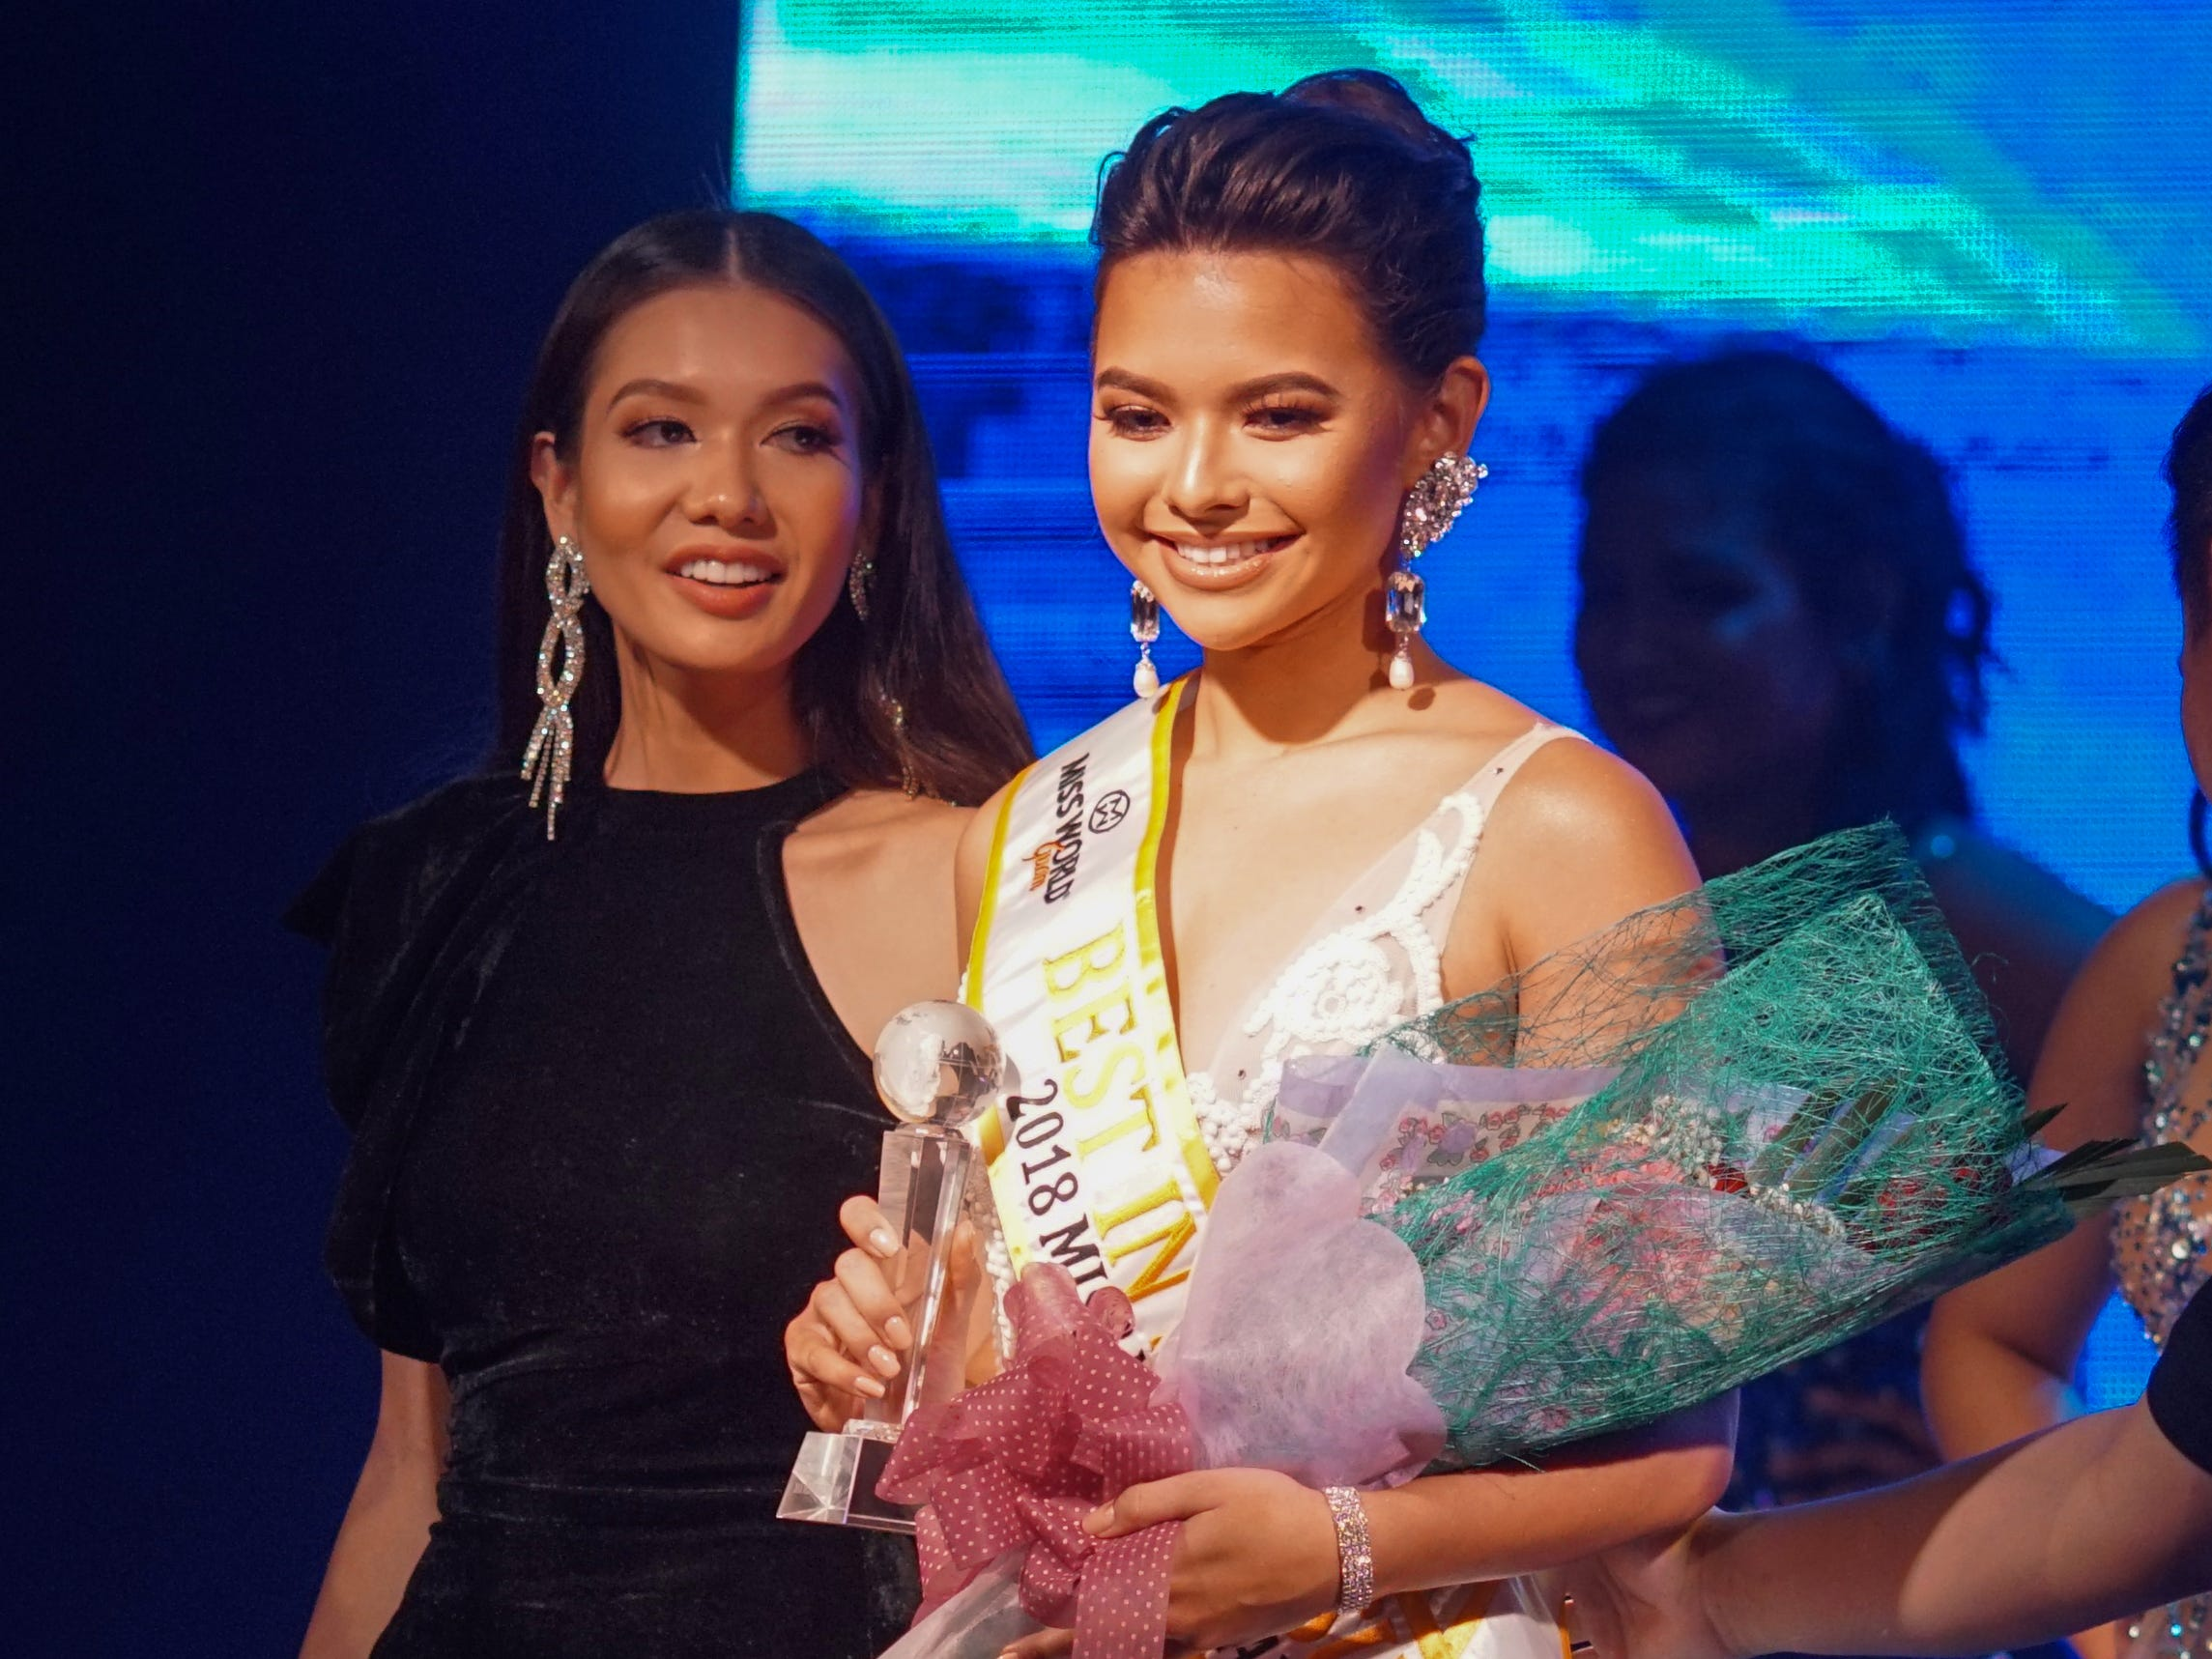 Contestant #2 Gianna Camacho Sgambelluri, 18, from Barrigada, wins Best in Swimsuit category at the  2018 Miss World Guam pageant held at Sheraton Laguna Guam Resort.